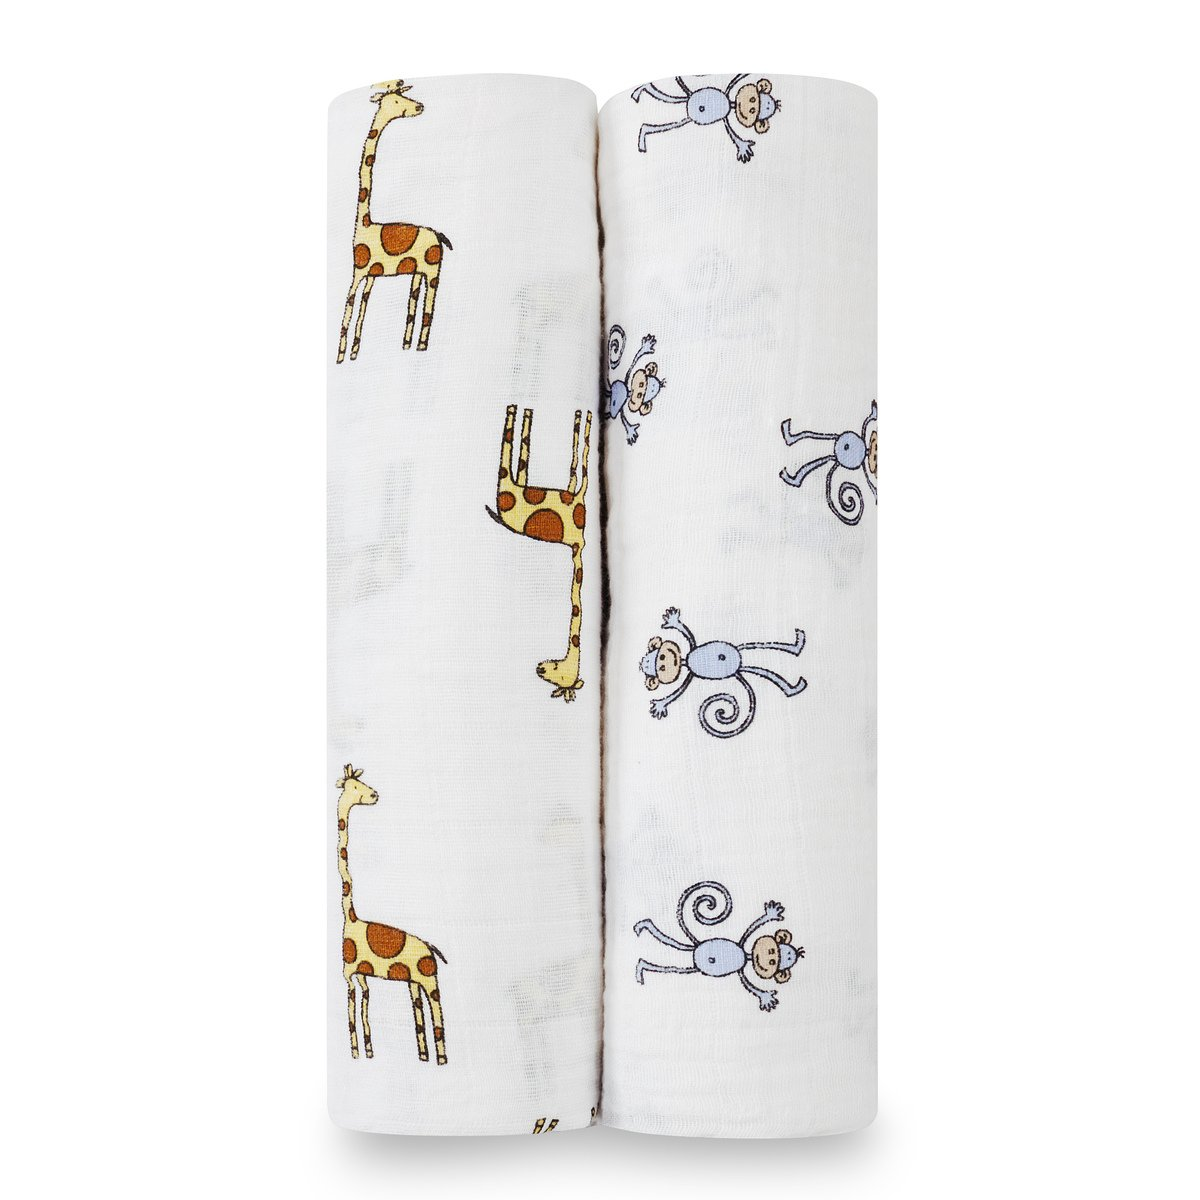 aden + anais swaddle, 100% cotton muslin, 120cm X 120cm, 2 pack, jungle jam 4023